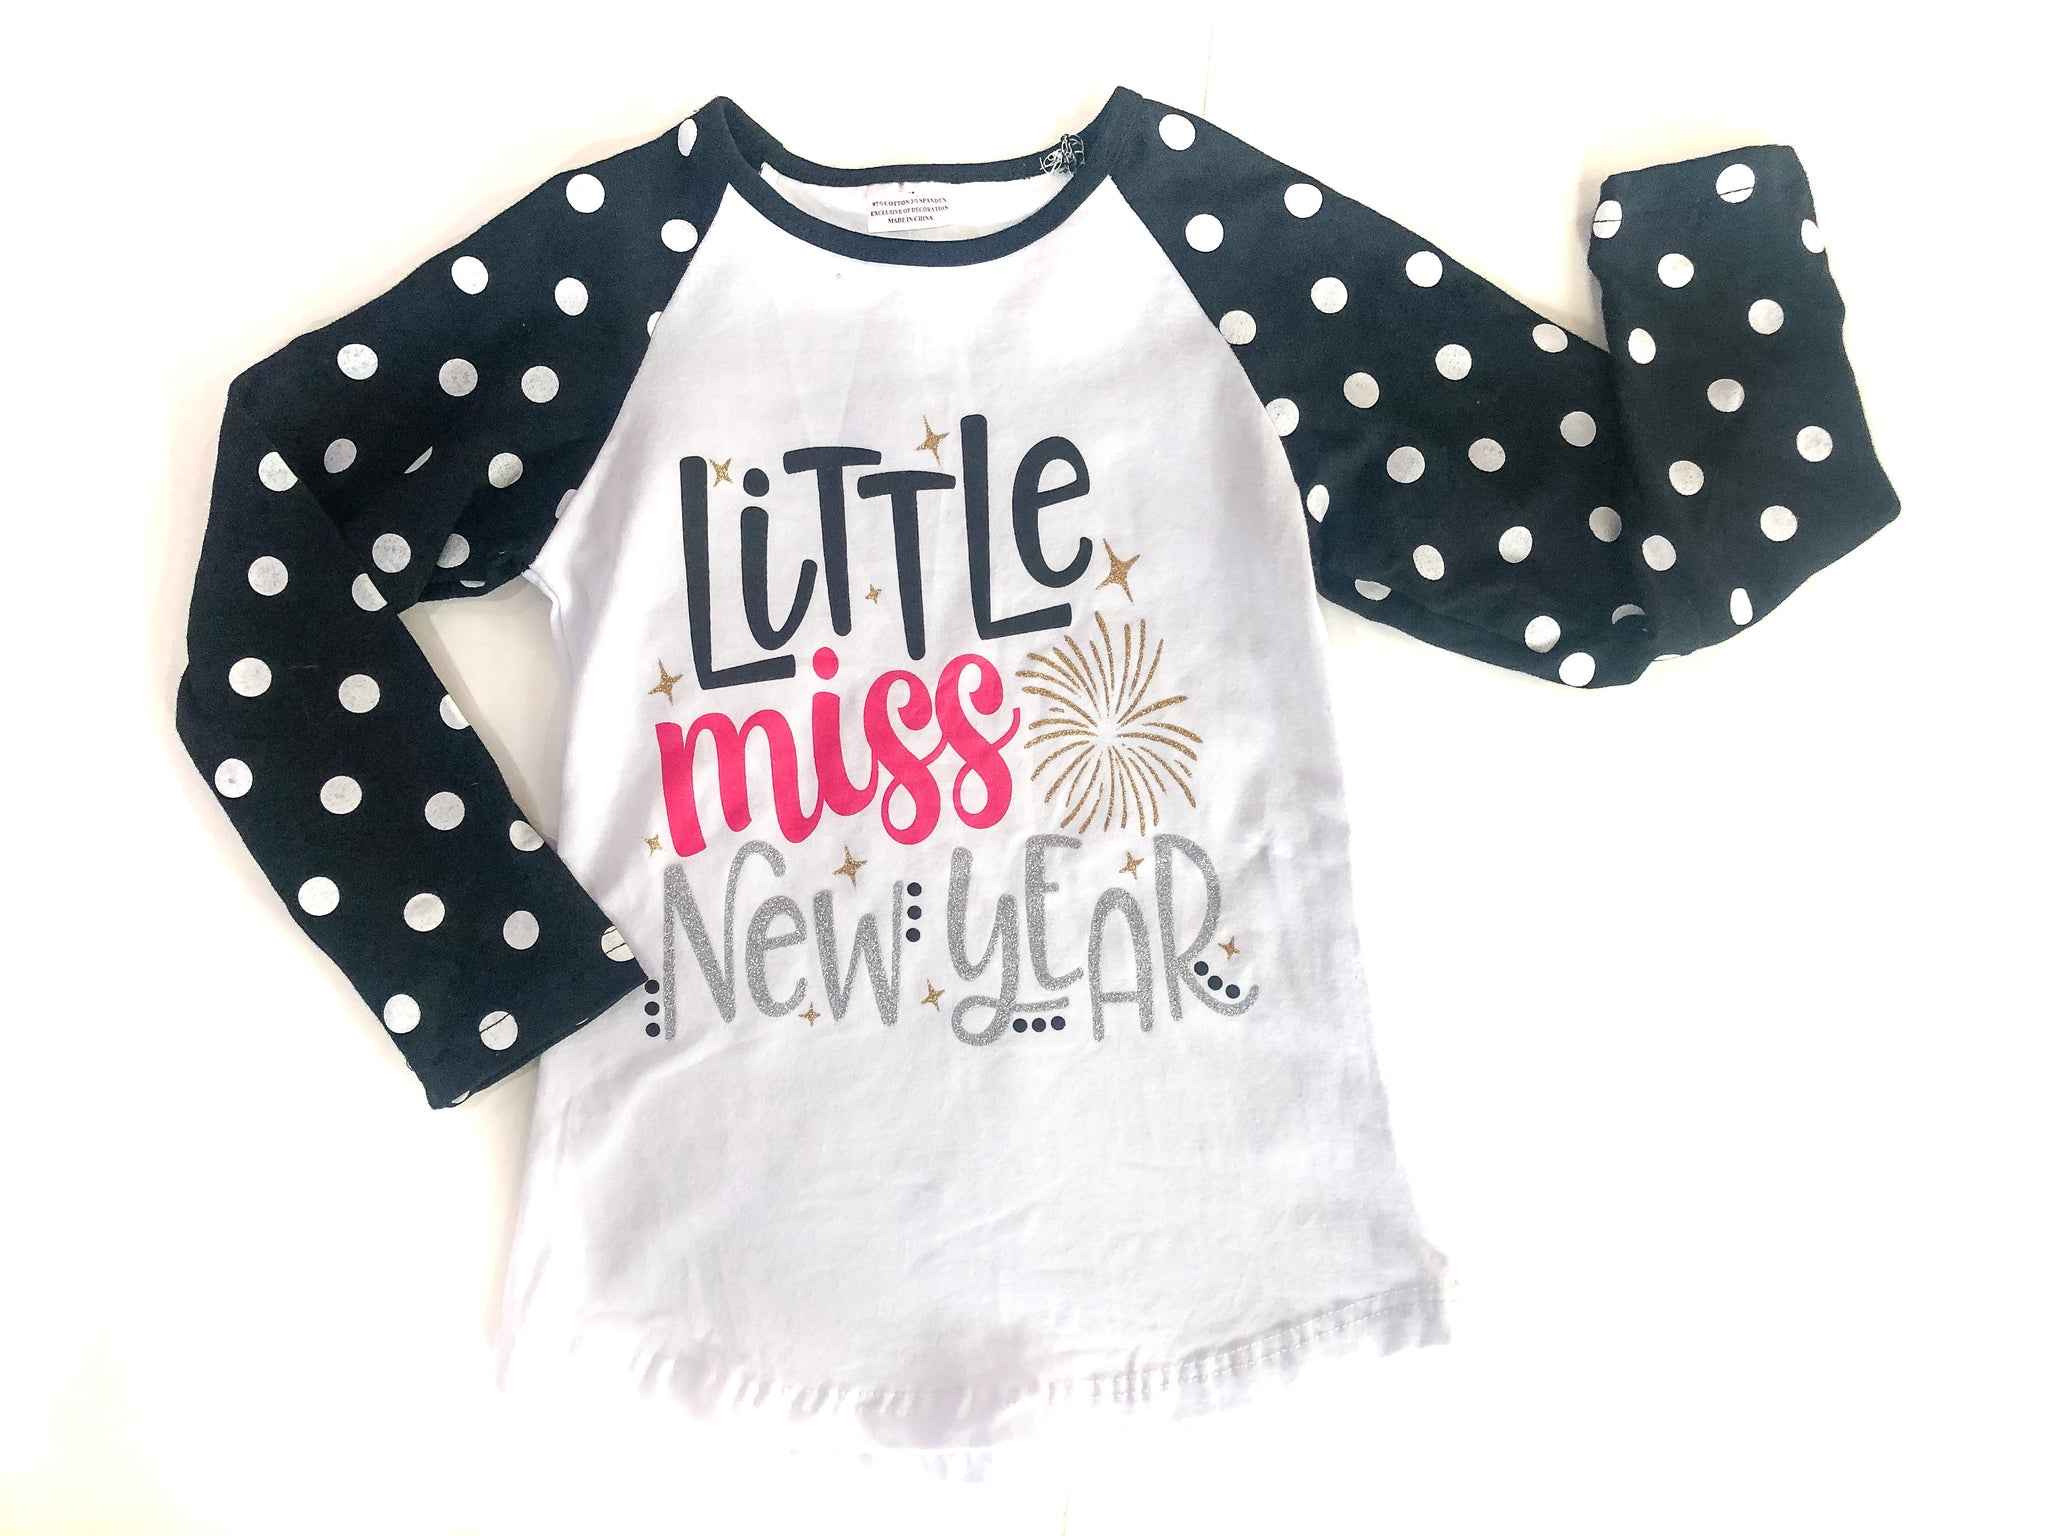 Little Miss New Year Tee